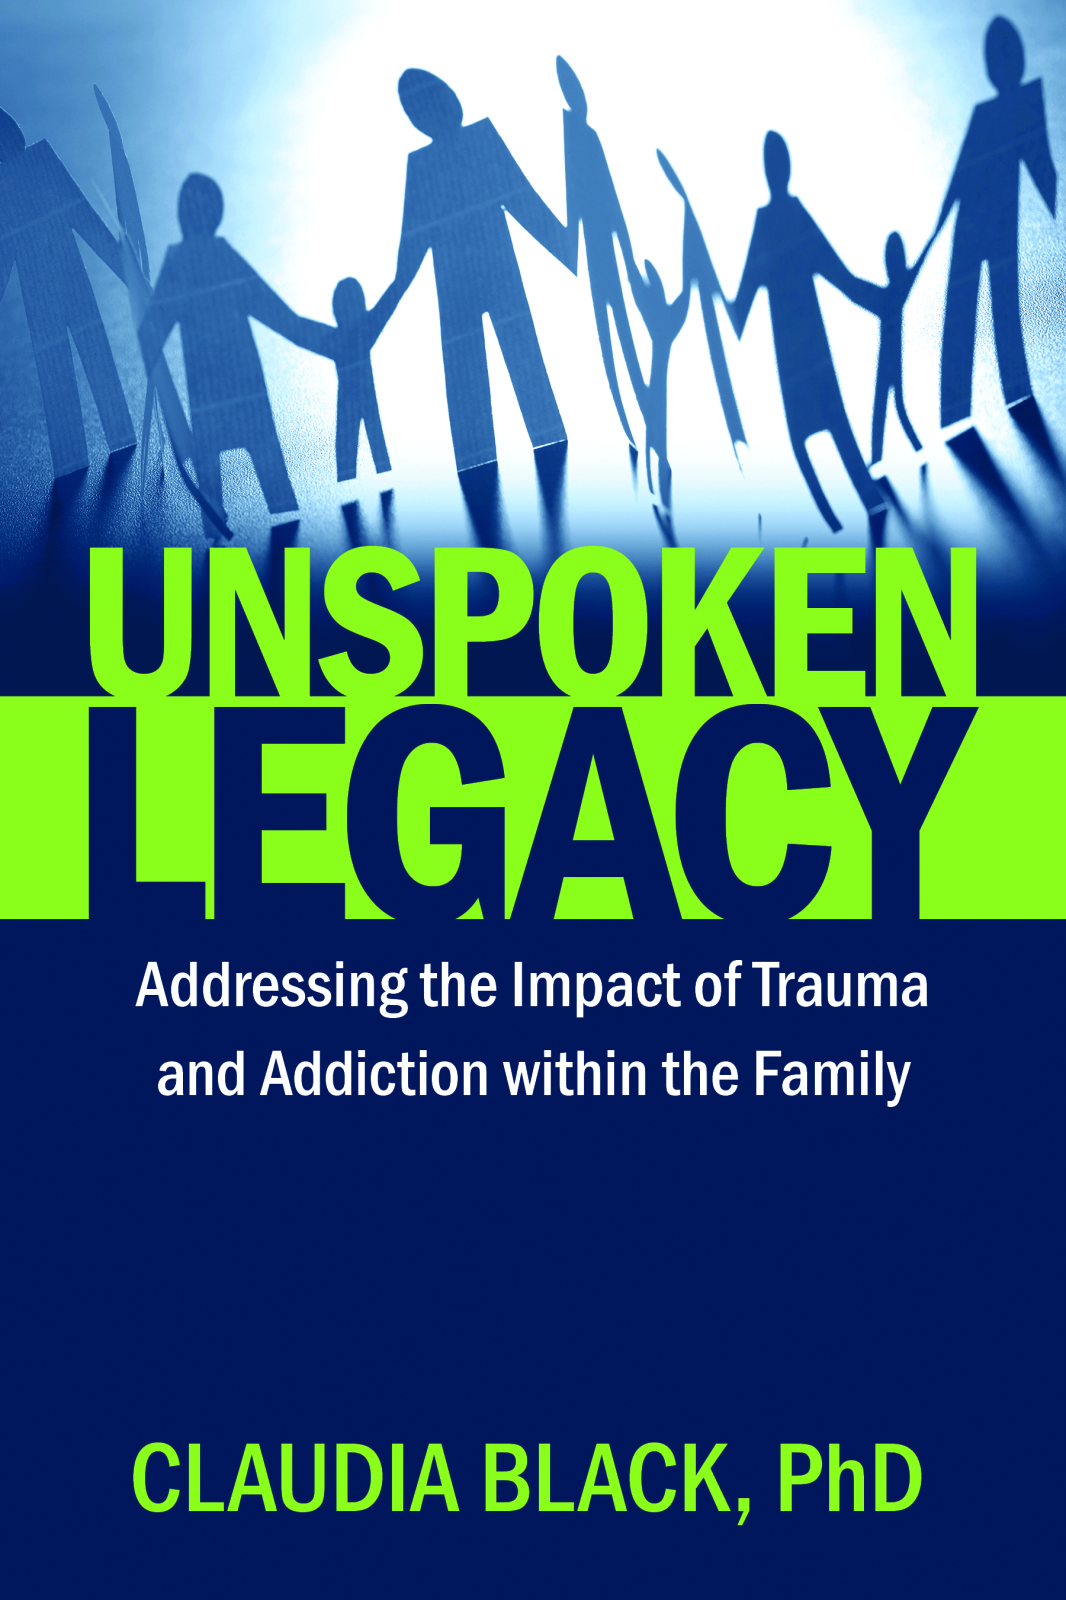 Unspoken Legacy Addressing the Impact of Trauma and Addiction within the Family